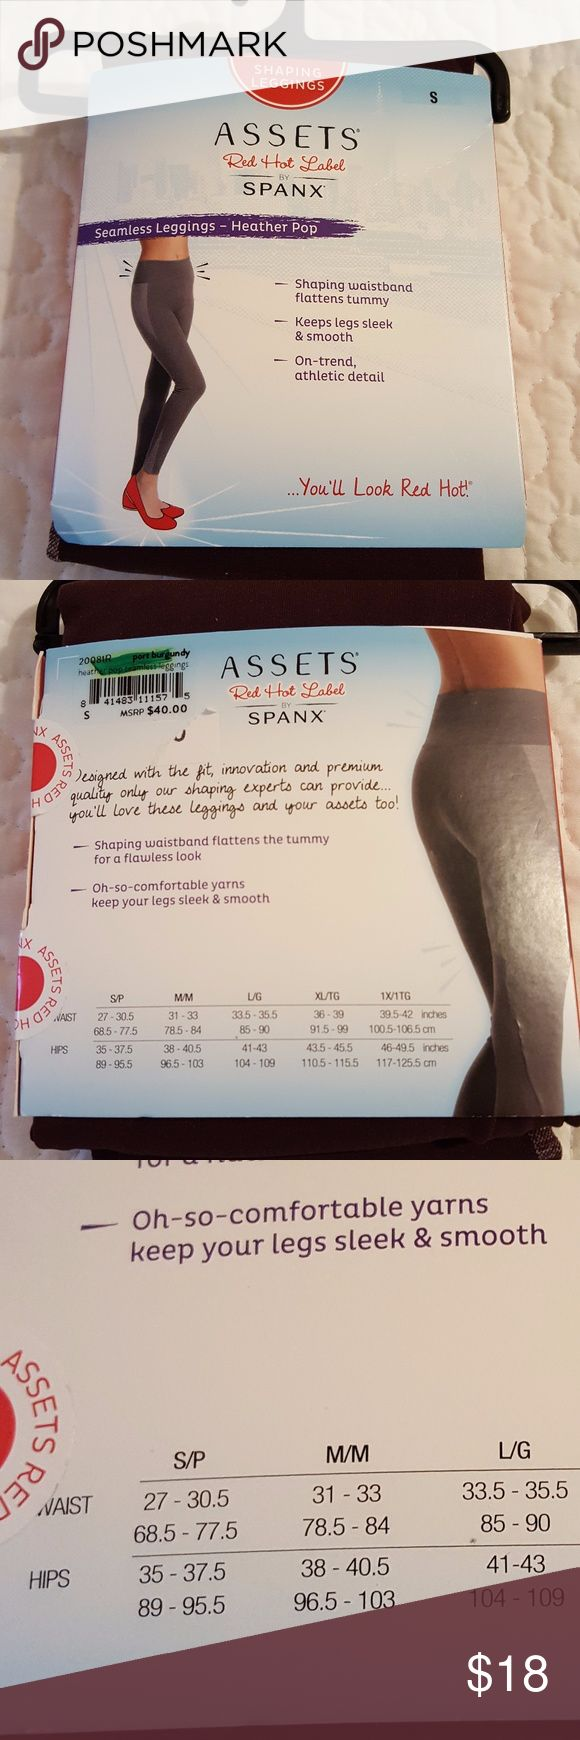 HEATHER POP SHAPING LEGGINGS BY SPANX SIZE S THESE MAKE YOUR LEGS LOOK SLEEK AND SMOOTH AND IT HAS A SHAPING WAISTBAND THAT FLATTENS THE TUMMY.  THE COLOR IS PORT BURGANDY. SPANX Pants Leggings